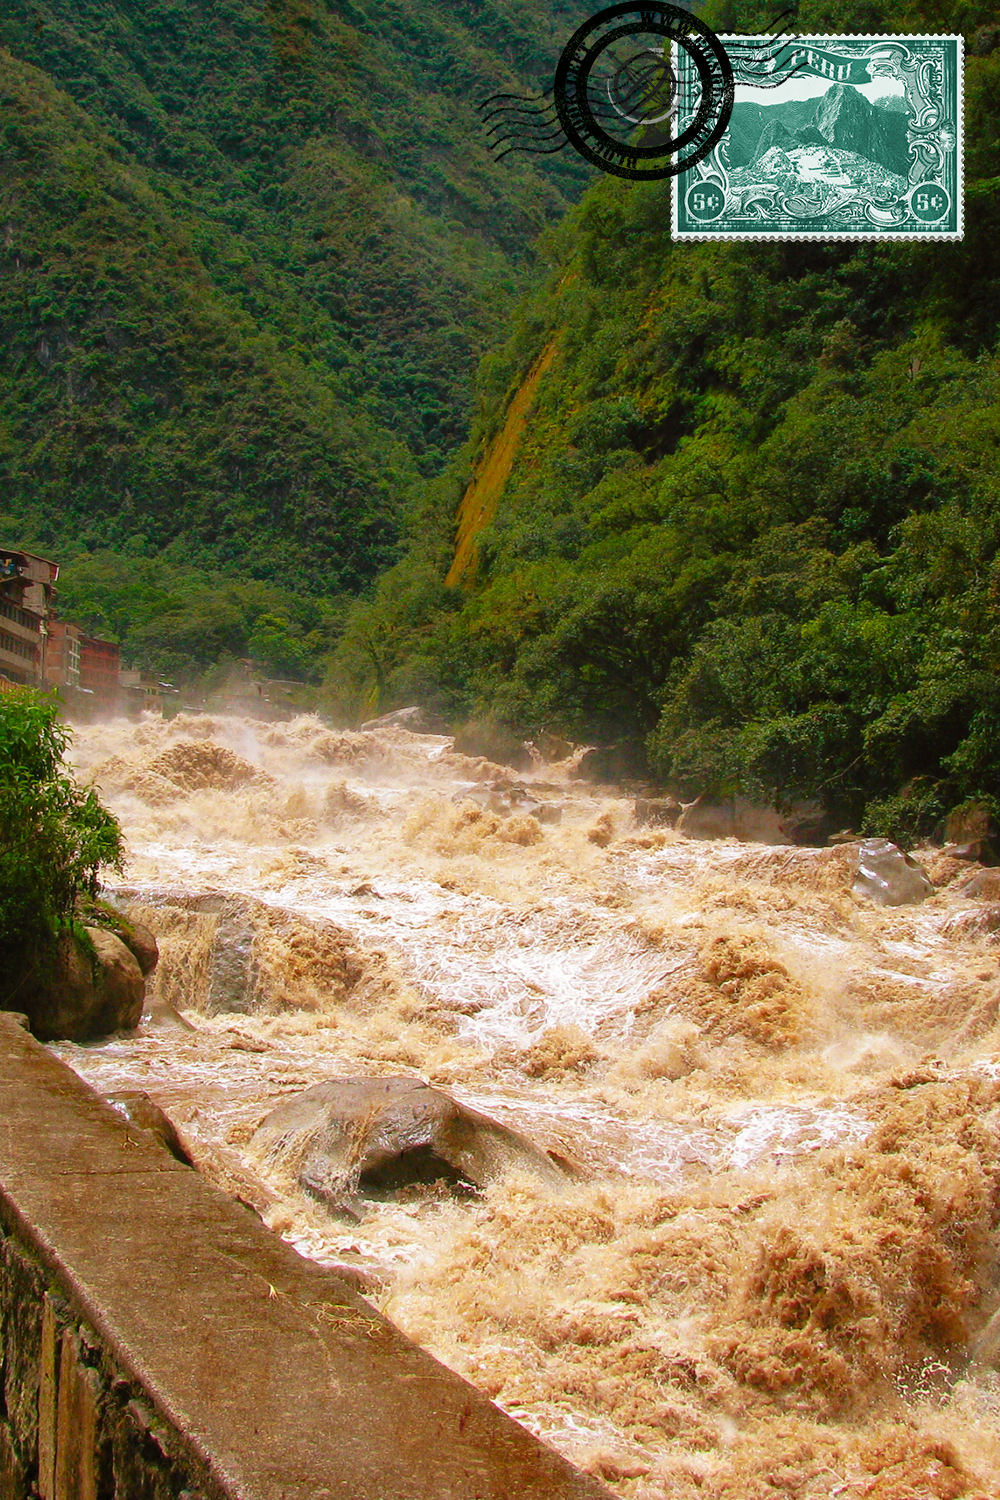 Urubamba River, also known as Sacred River